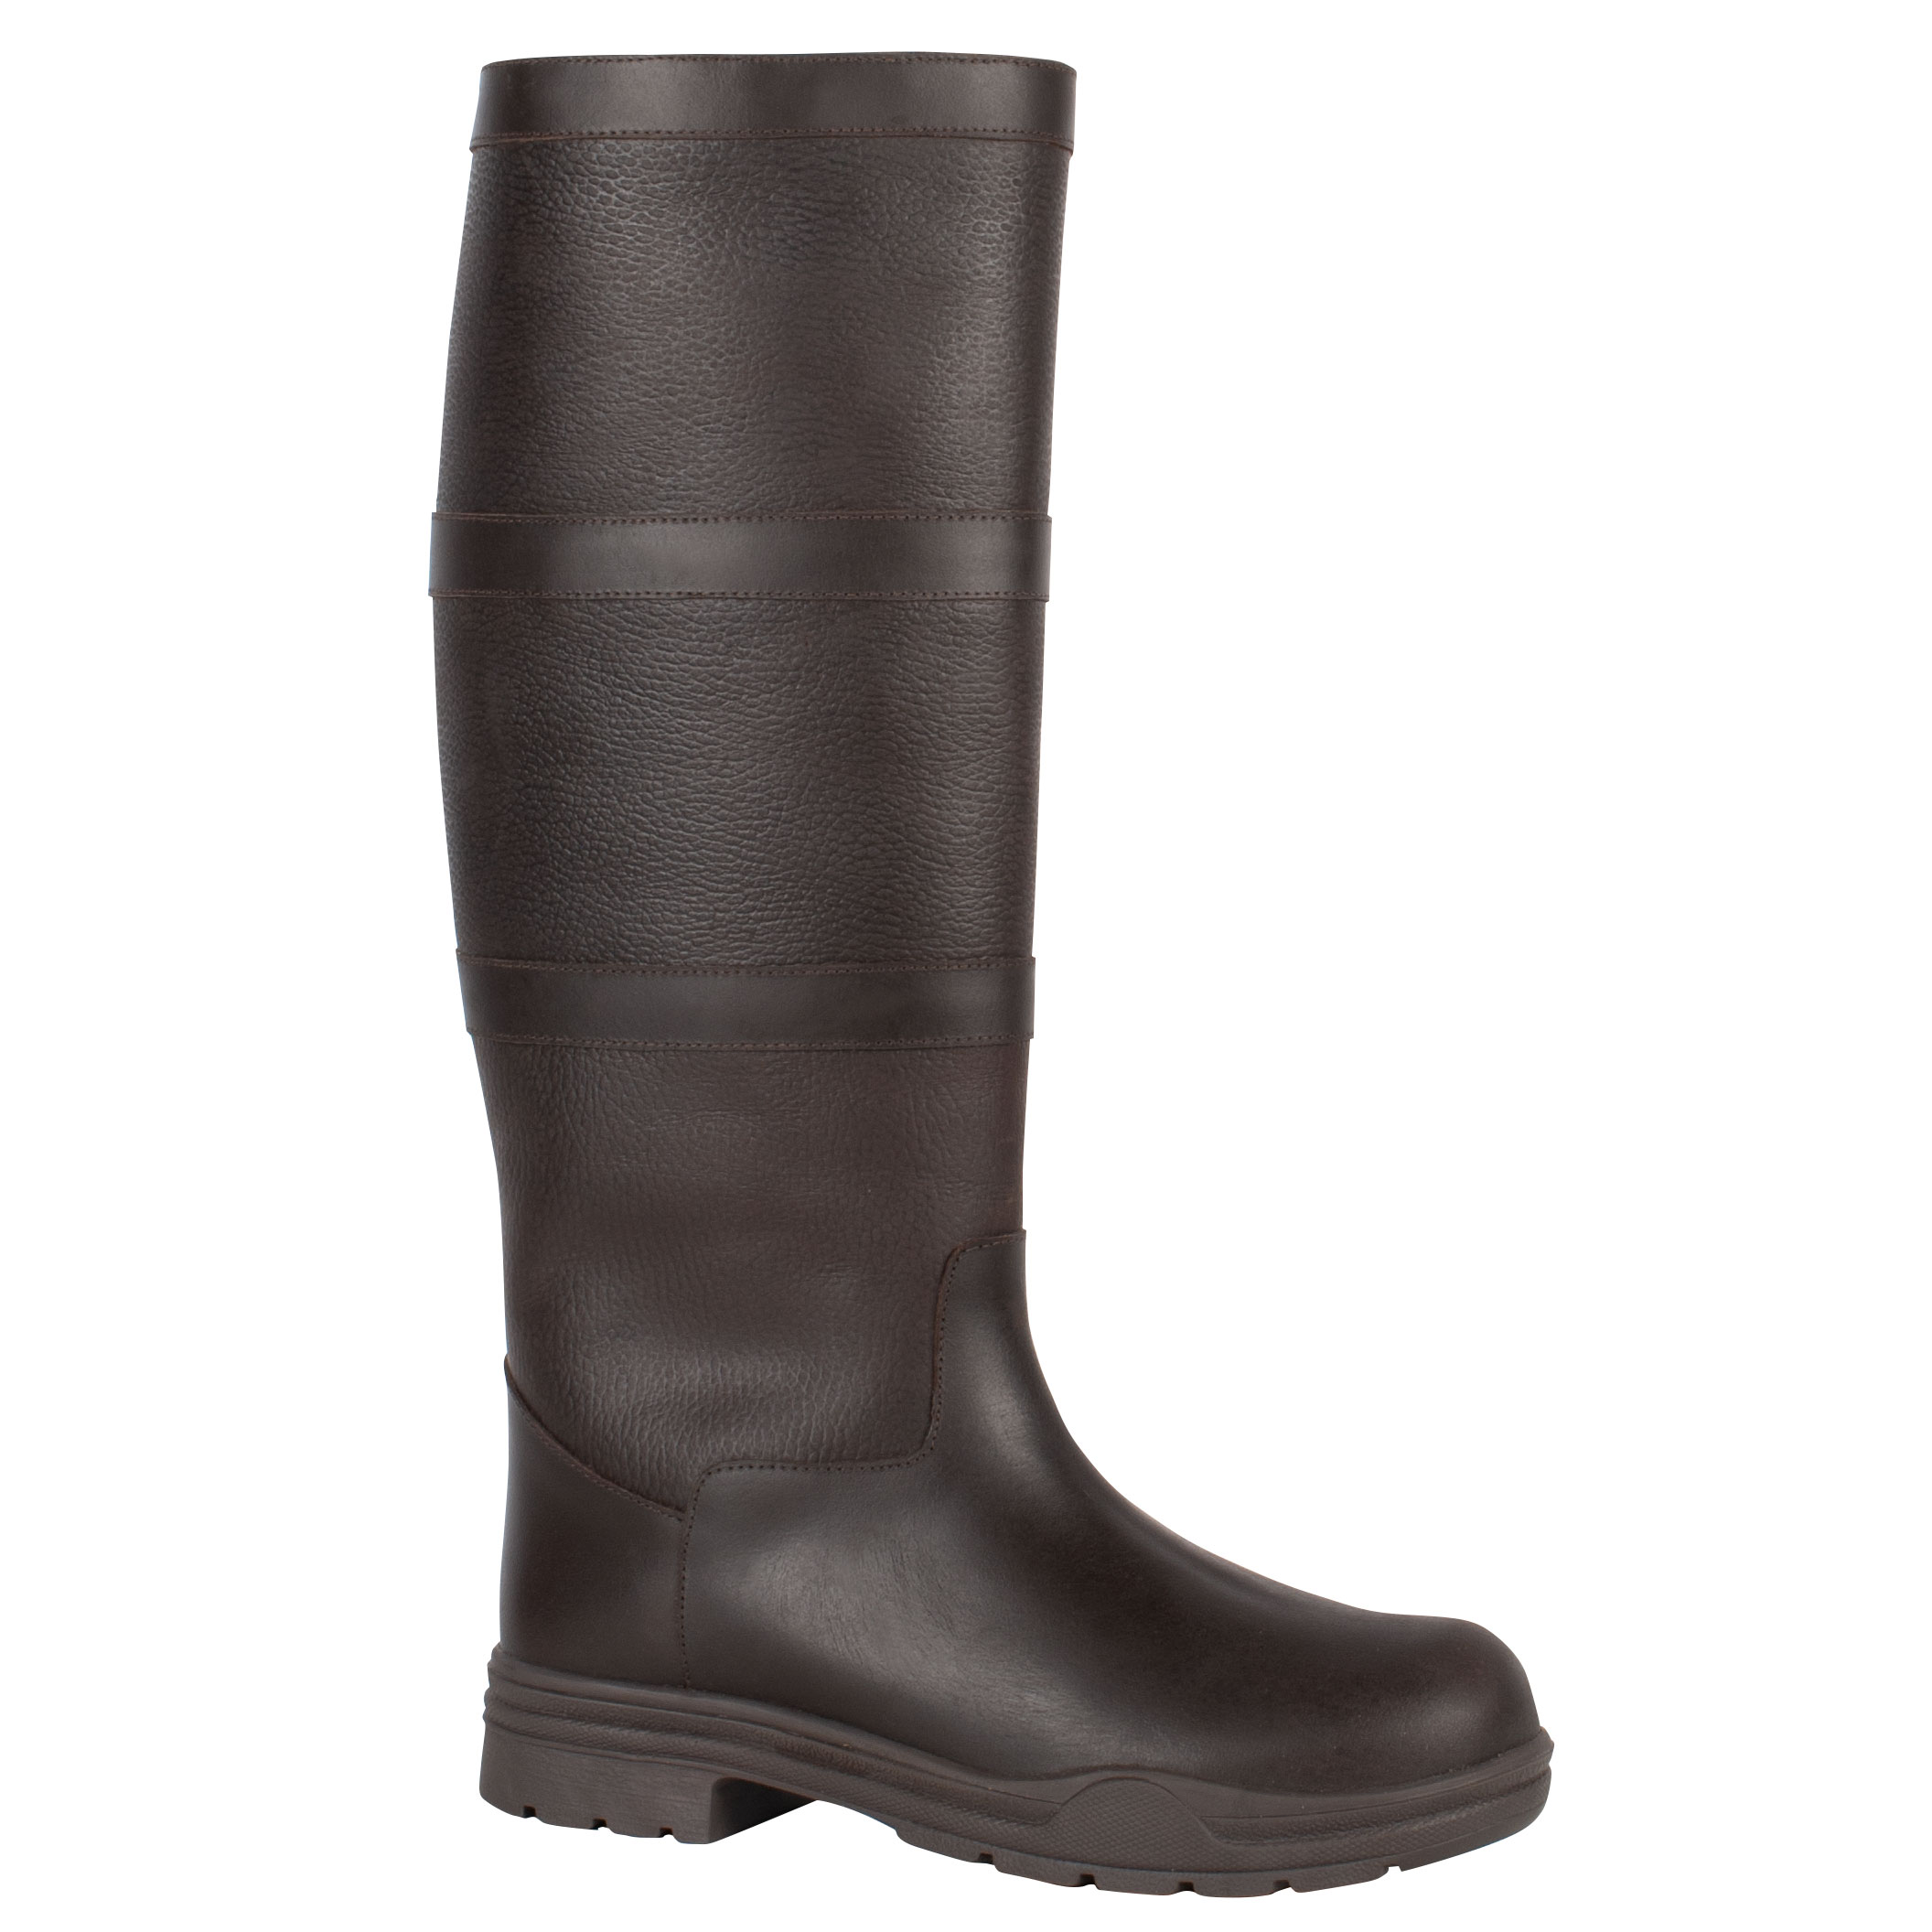 Mondoni Country Boots donkerbruin maat:41